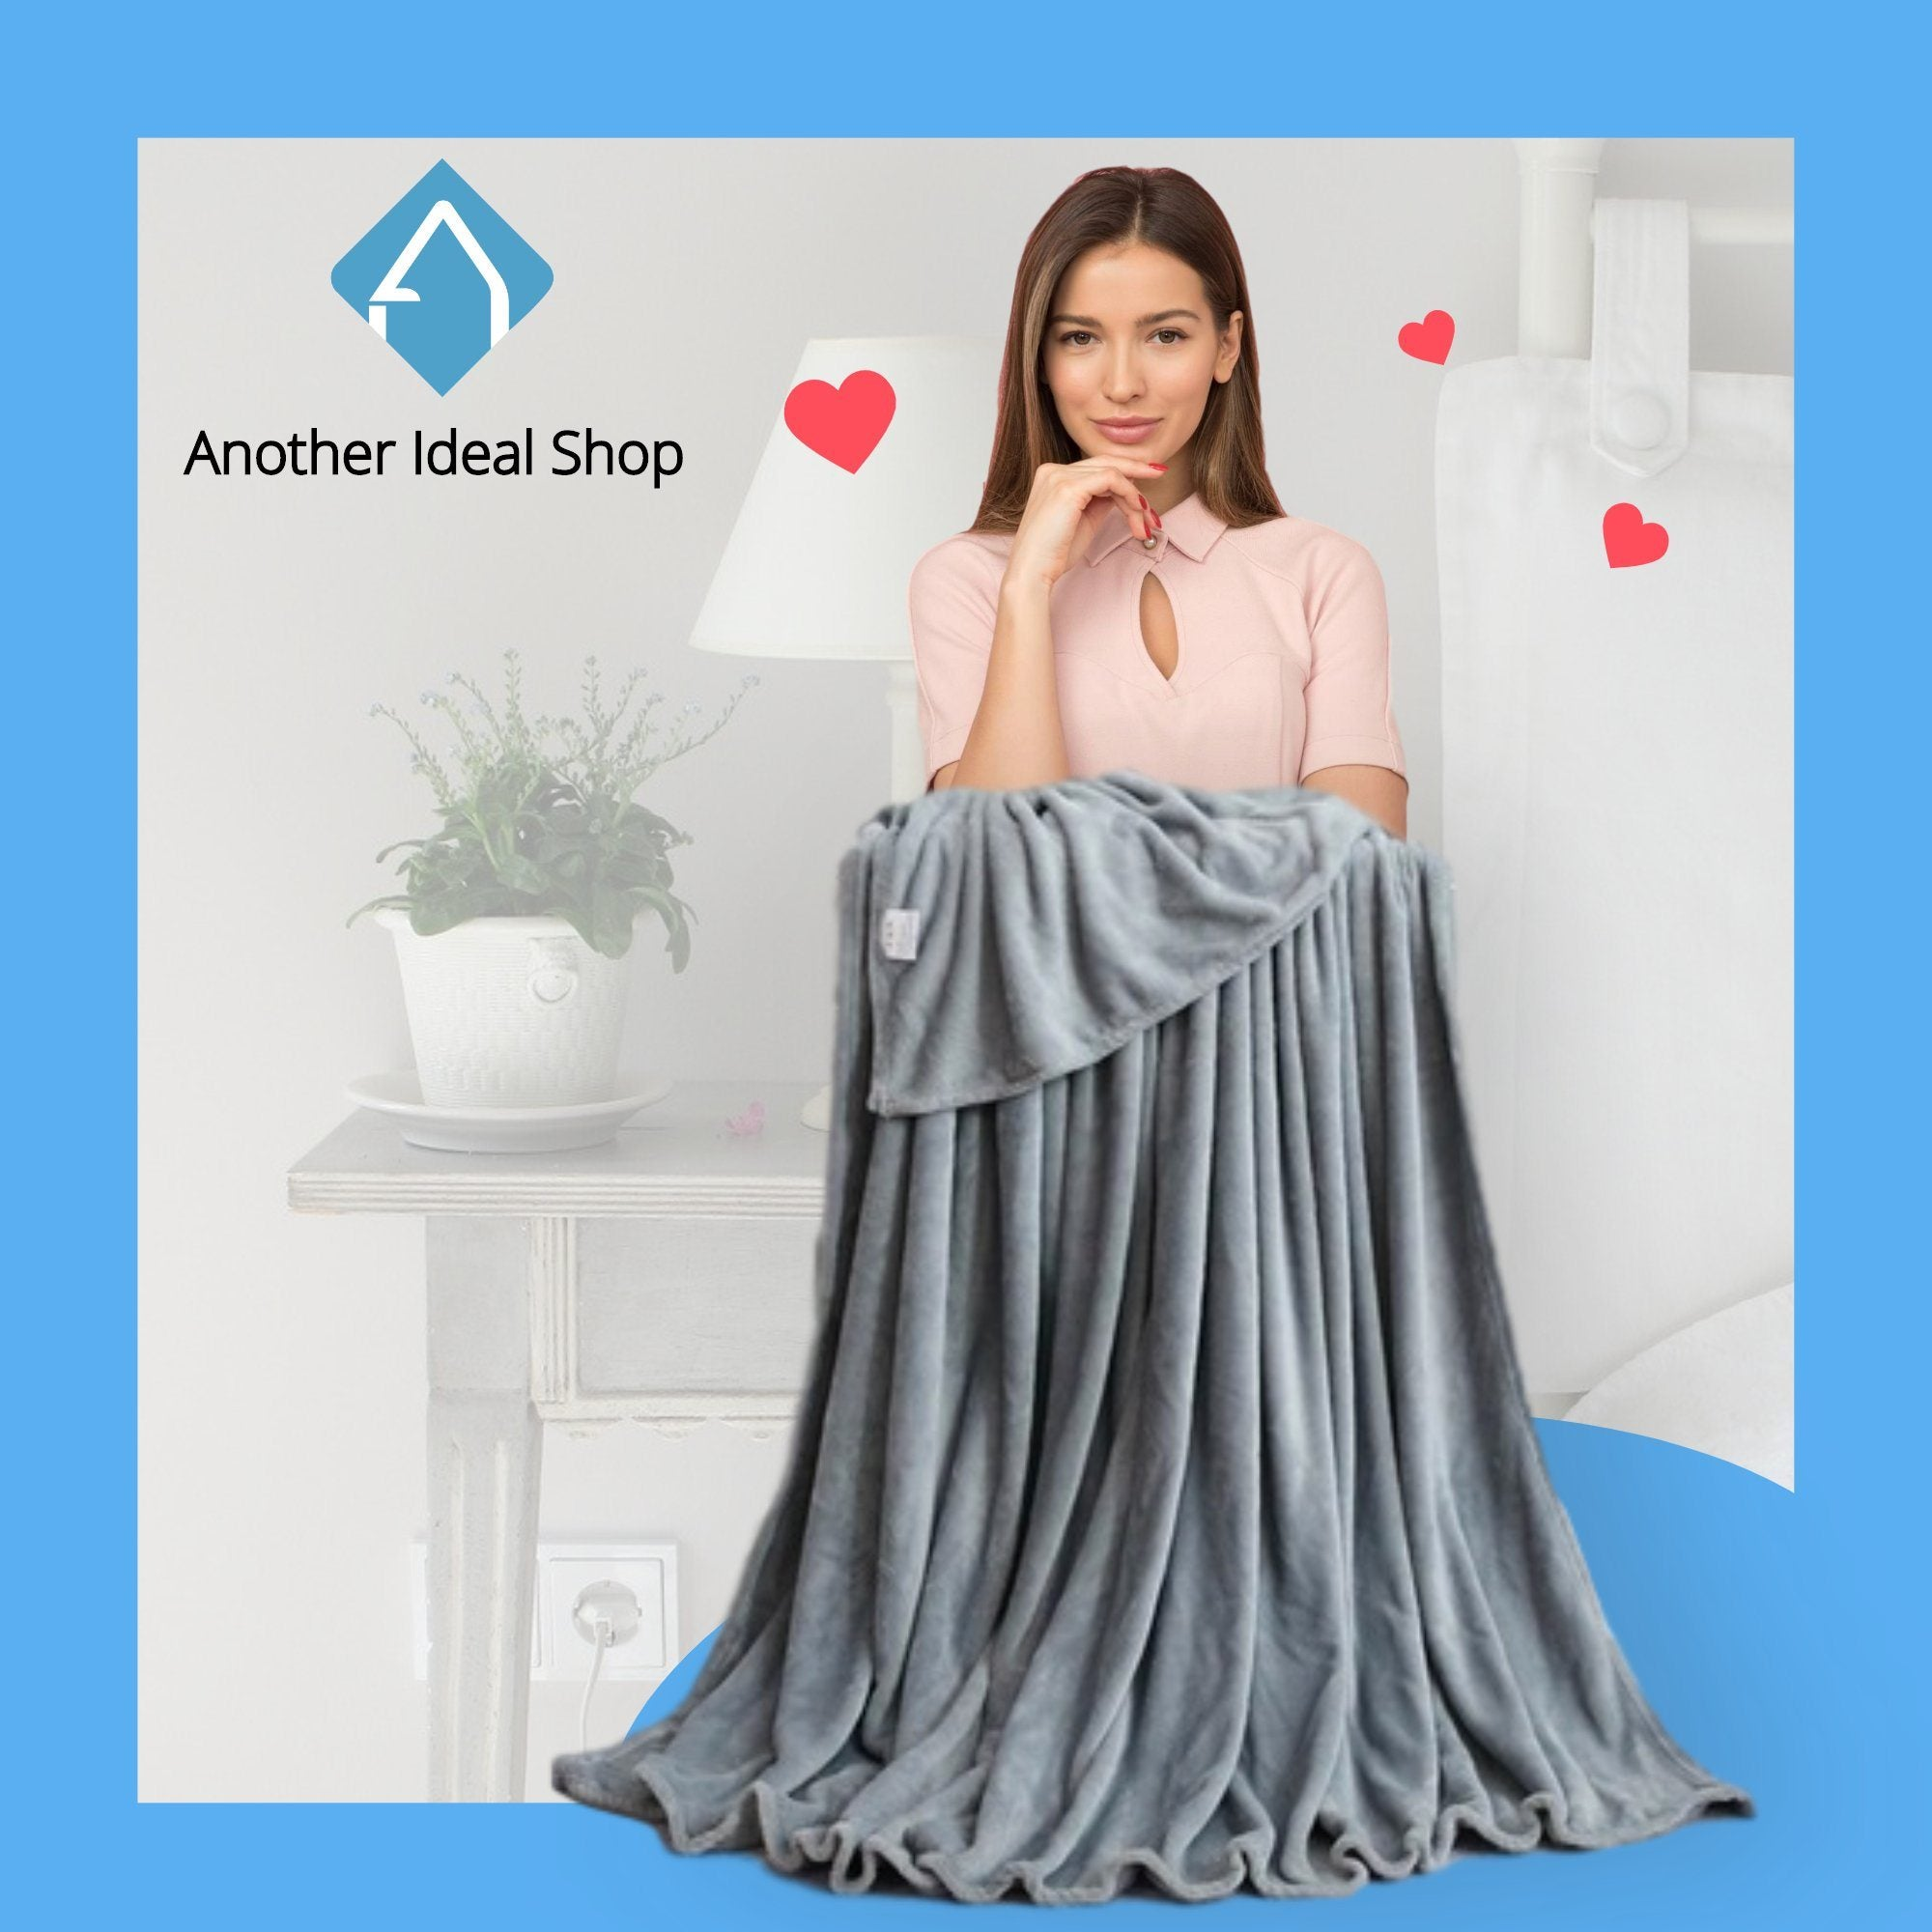 Luxury Weighted Blanket Another Ideal Shop 70cm x 100cm Silver